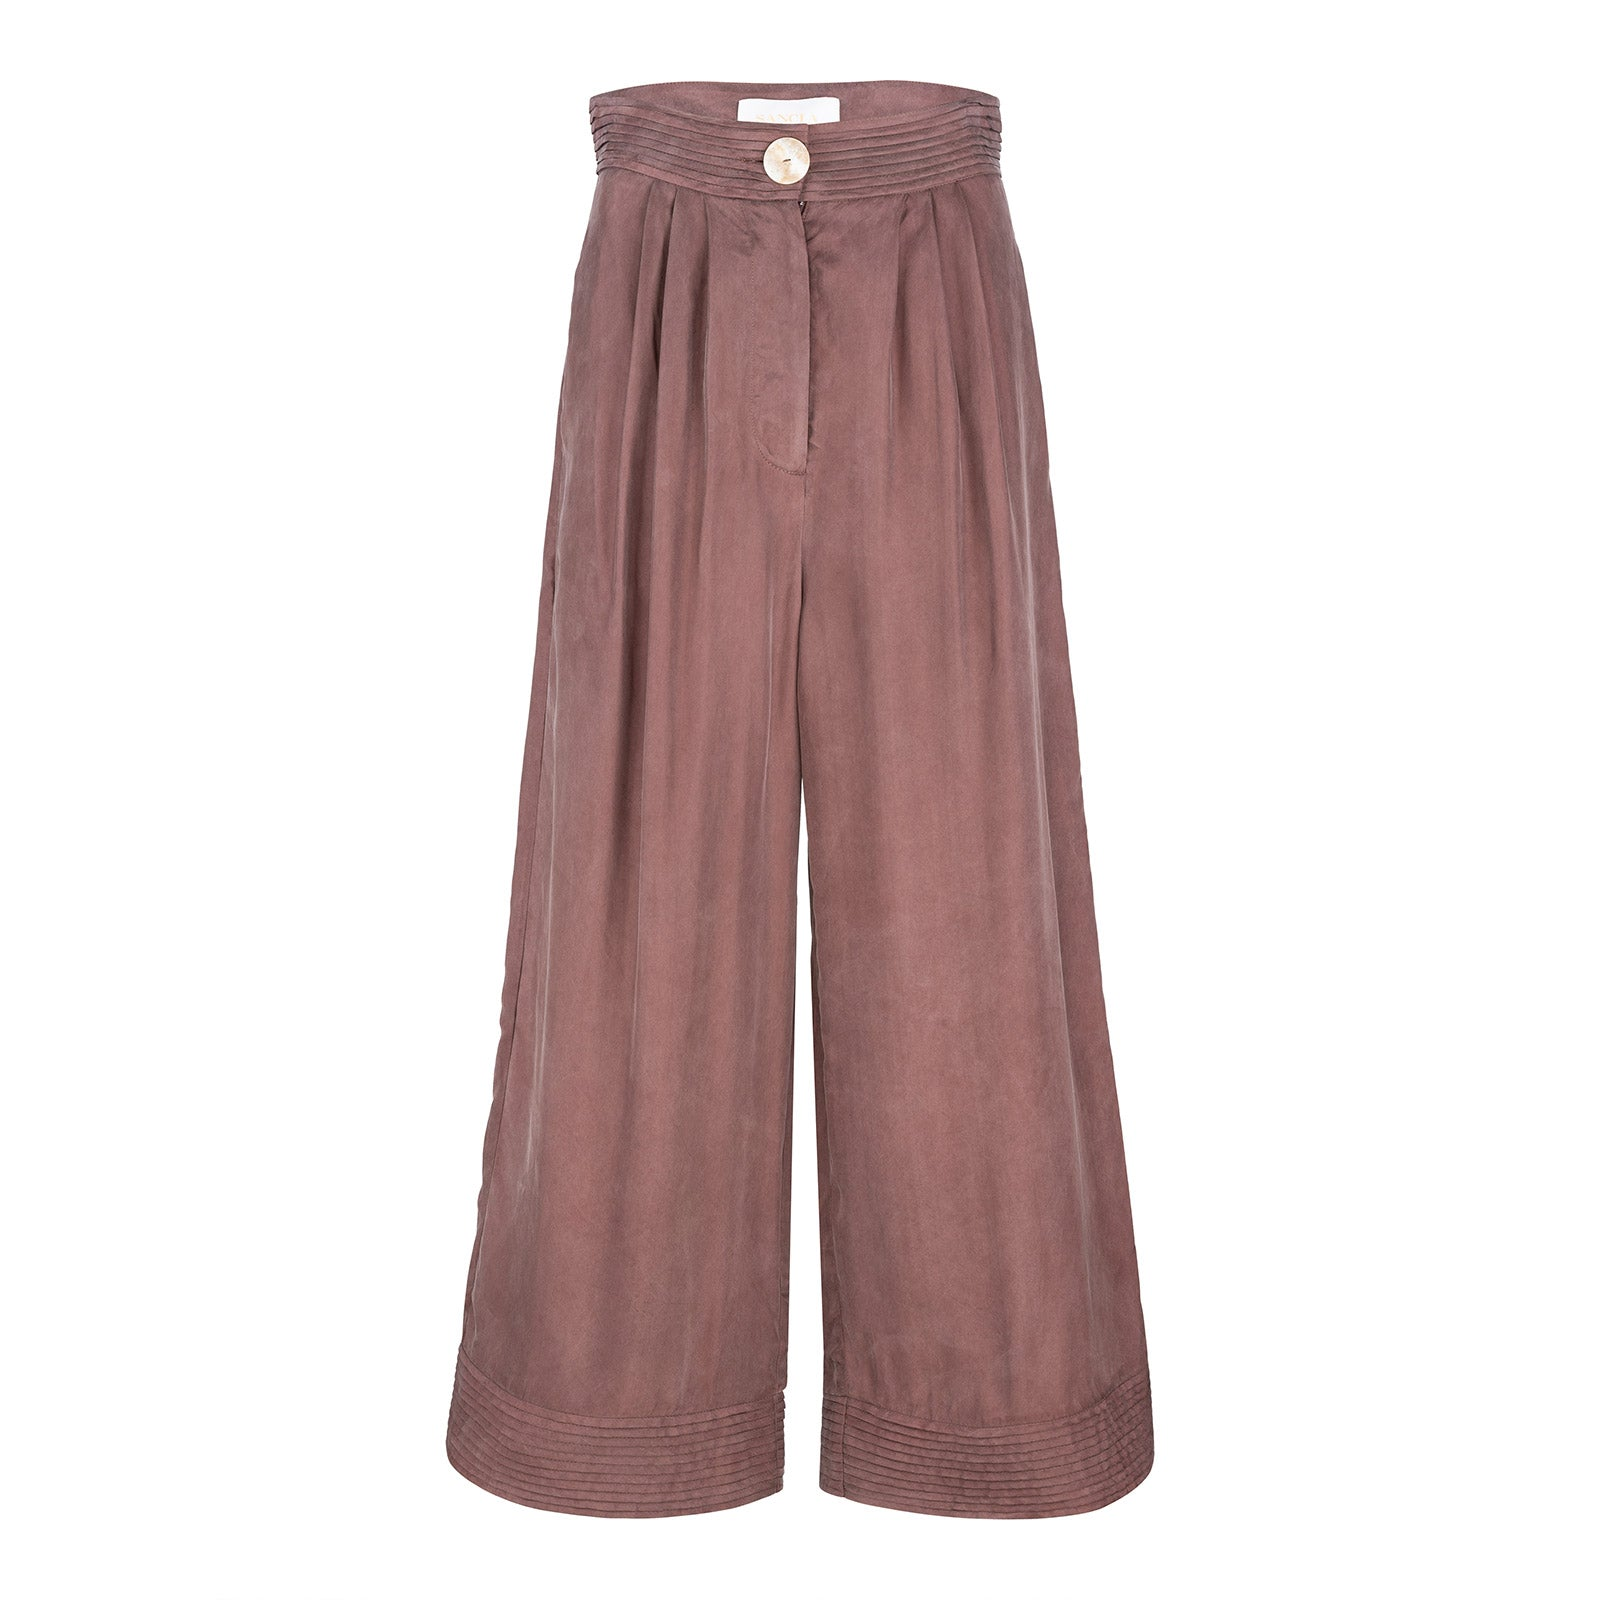 THE DAFINE PANTS